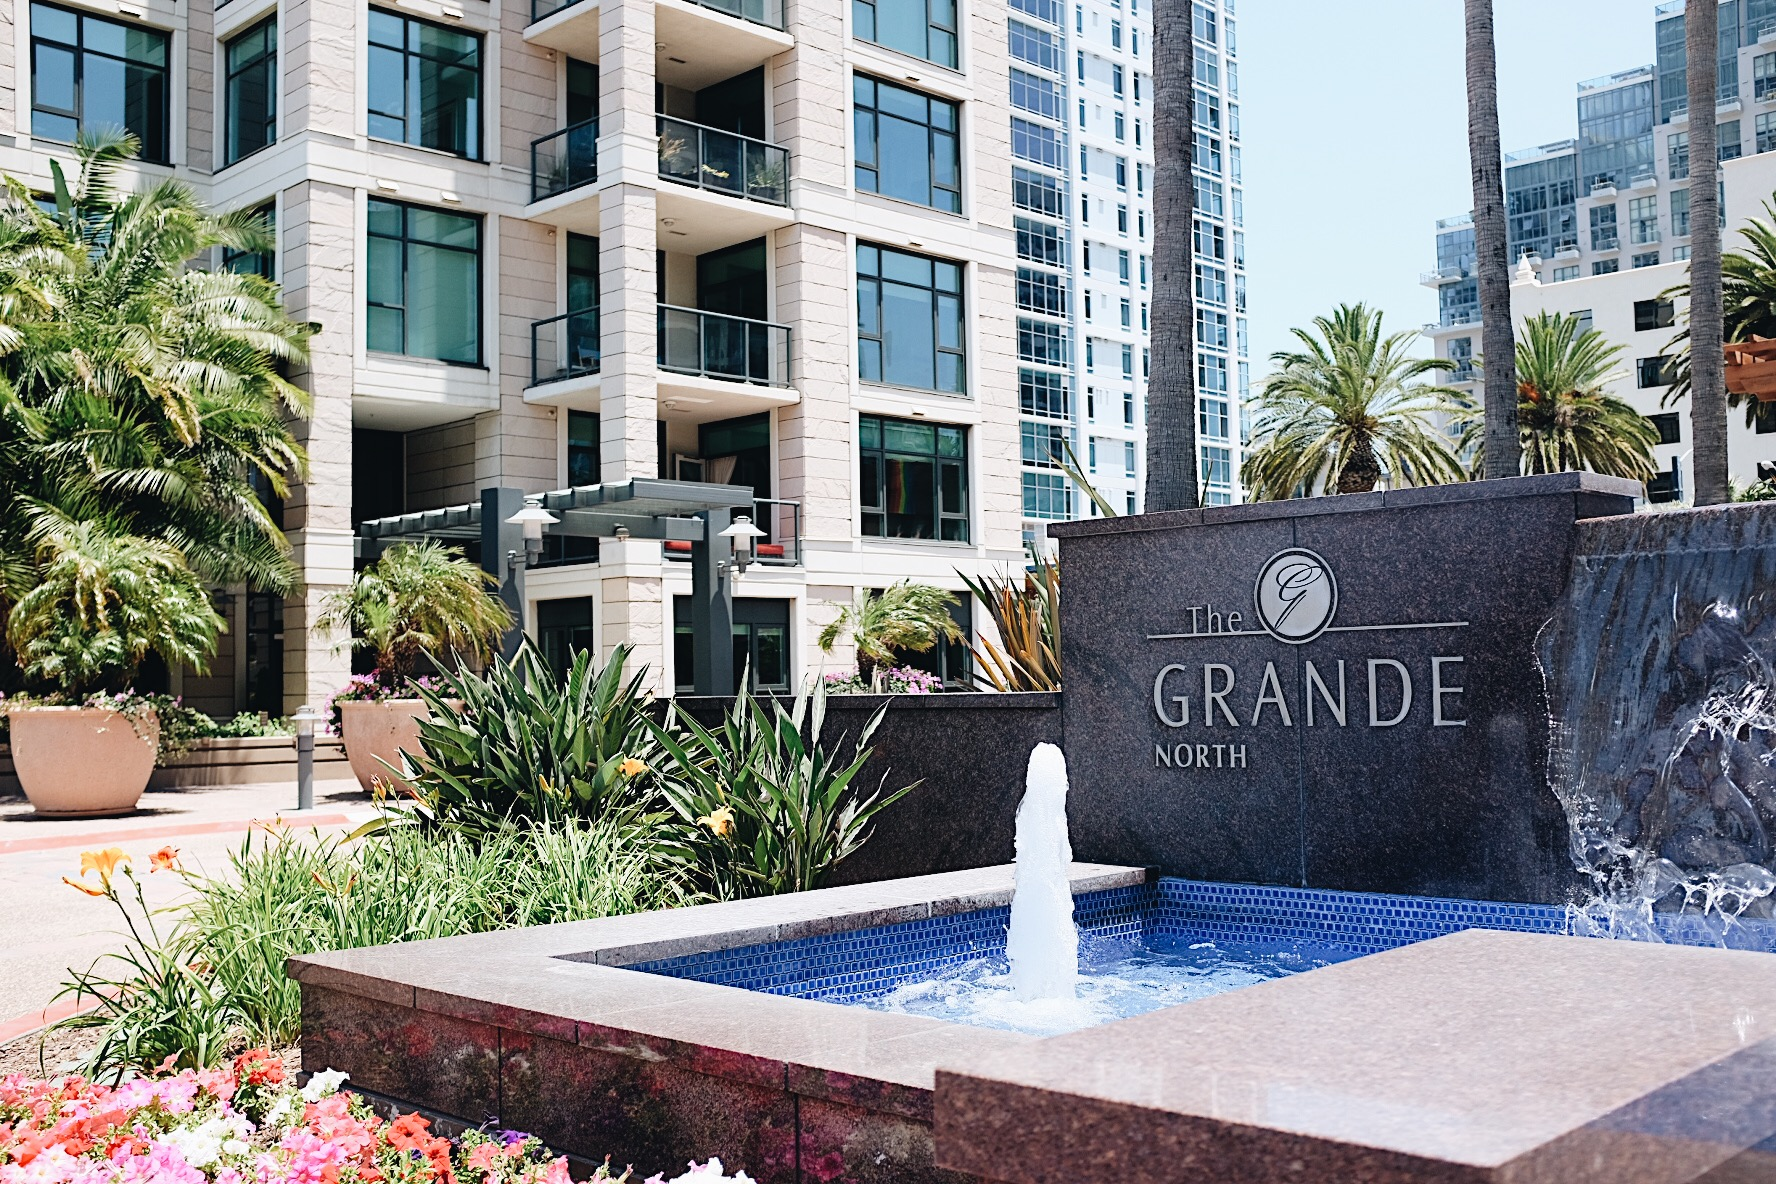 Grande San Diego, CMP, Cornerstone Managing Partners, Cornerstone Construction